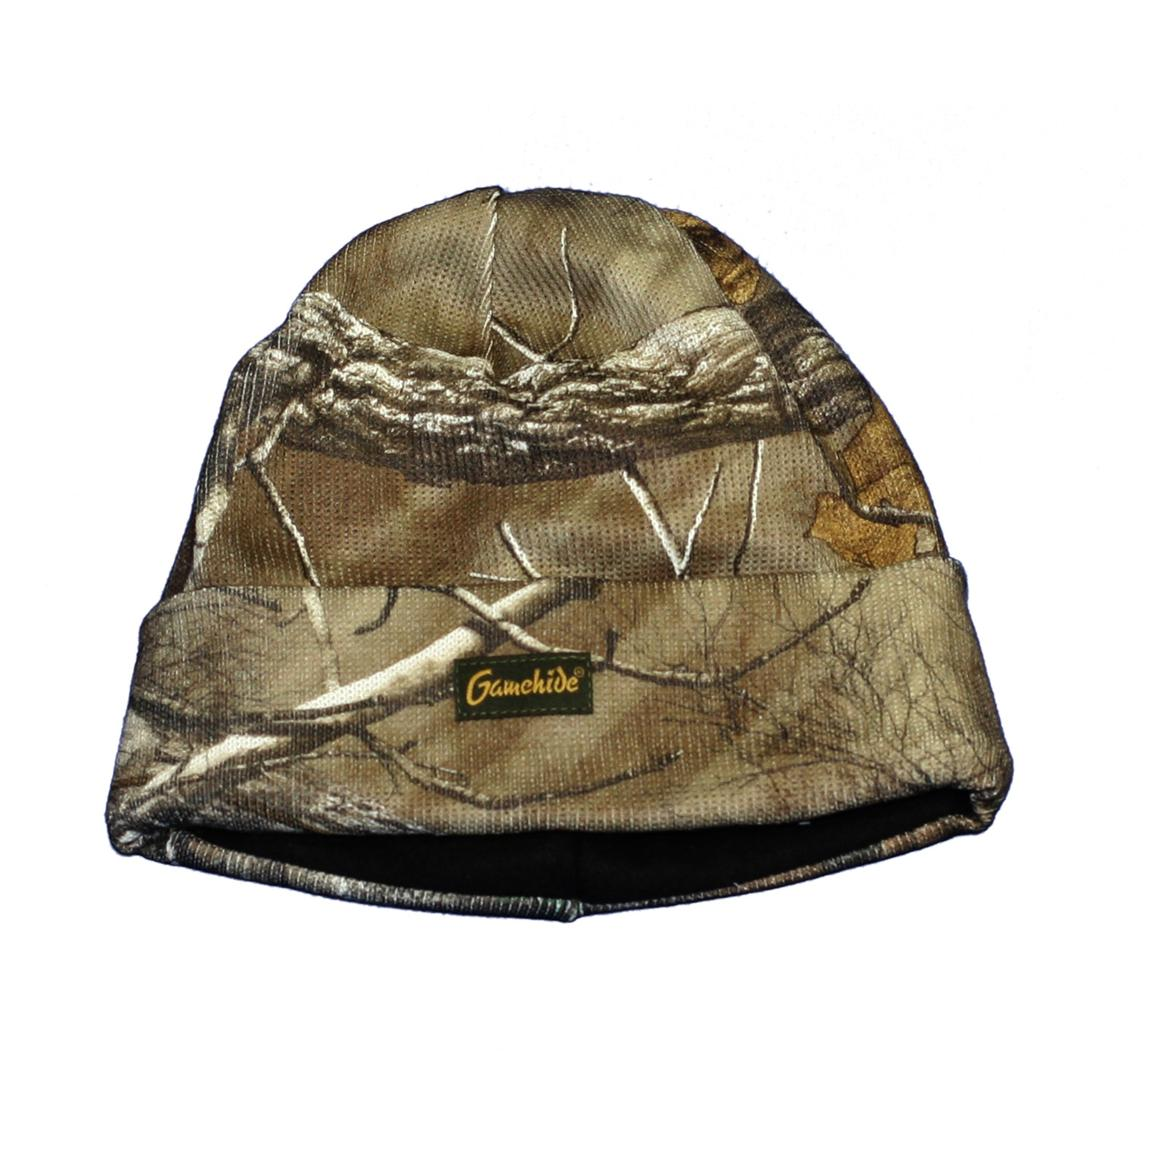 Gamehide® 100 gram Thinsulate™ Insulation Drizzle Knit Hat, Realtree Xtra®